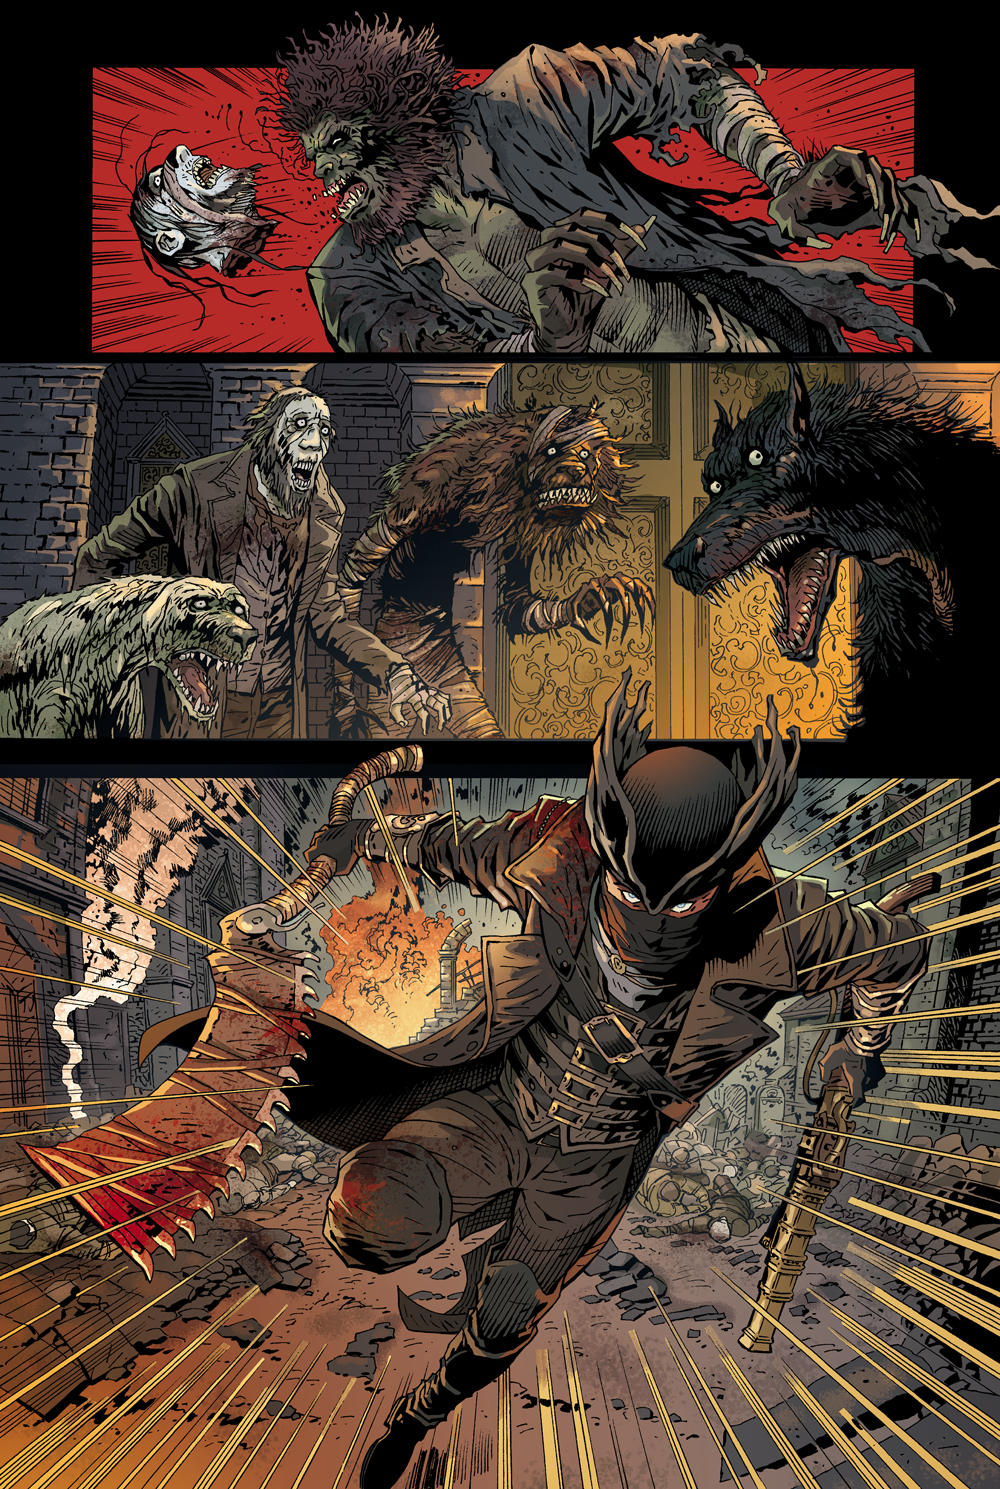 Bloodborne S Debut Comic Features Four Cover Options And Some Great Interior Artwork Vg247